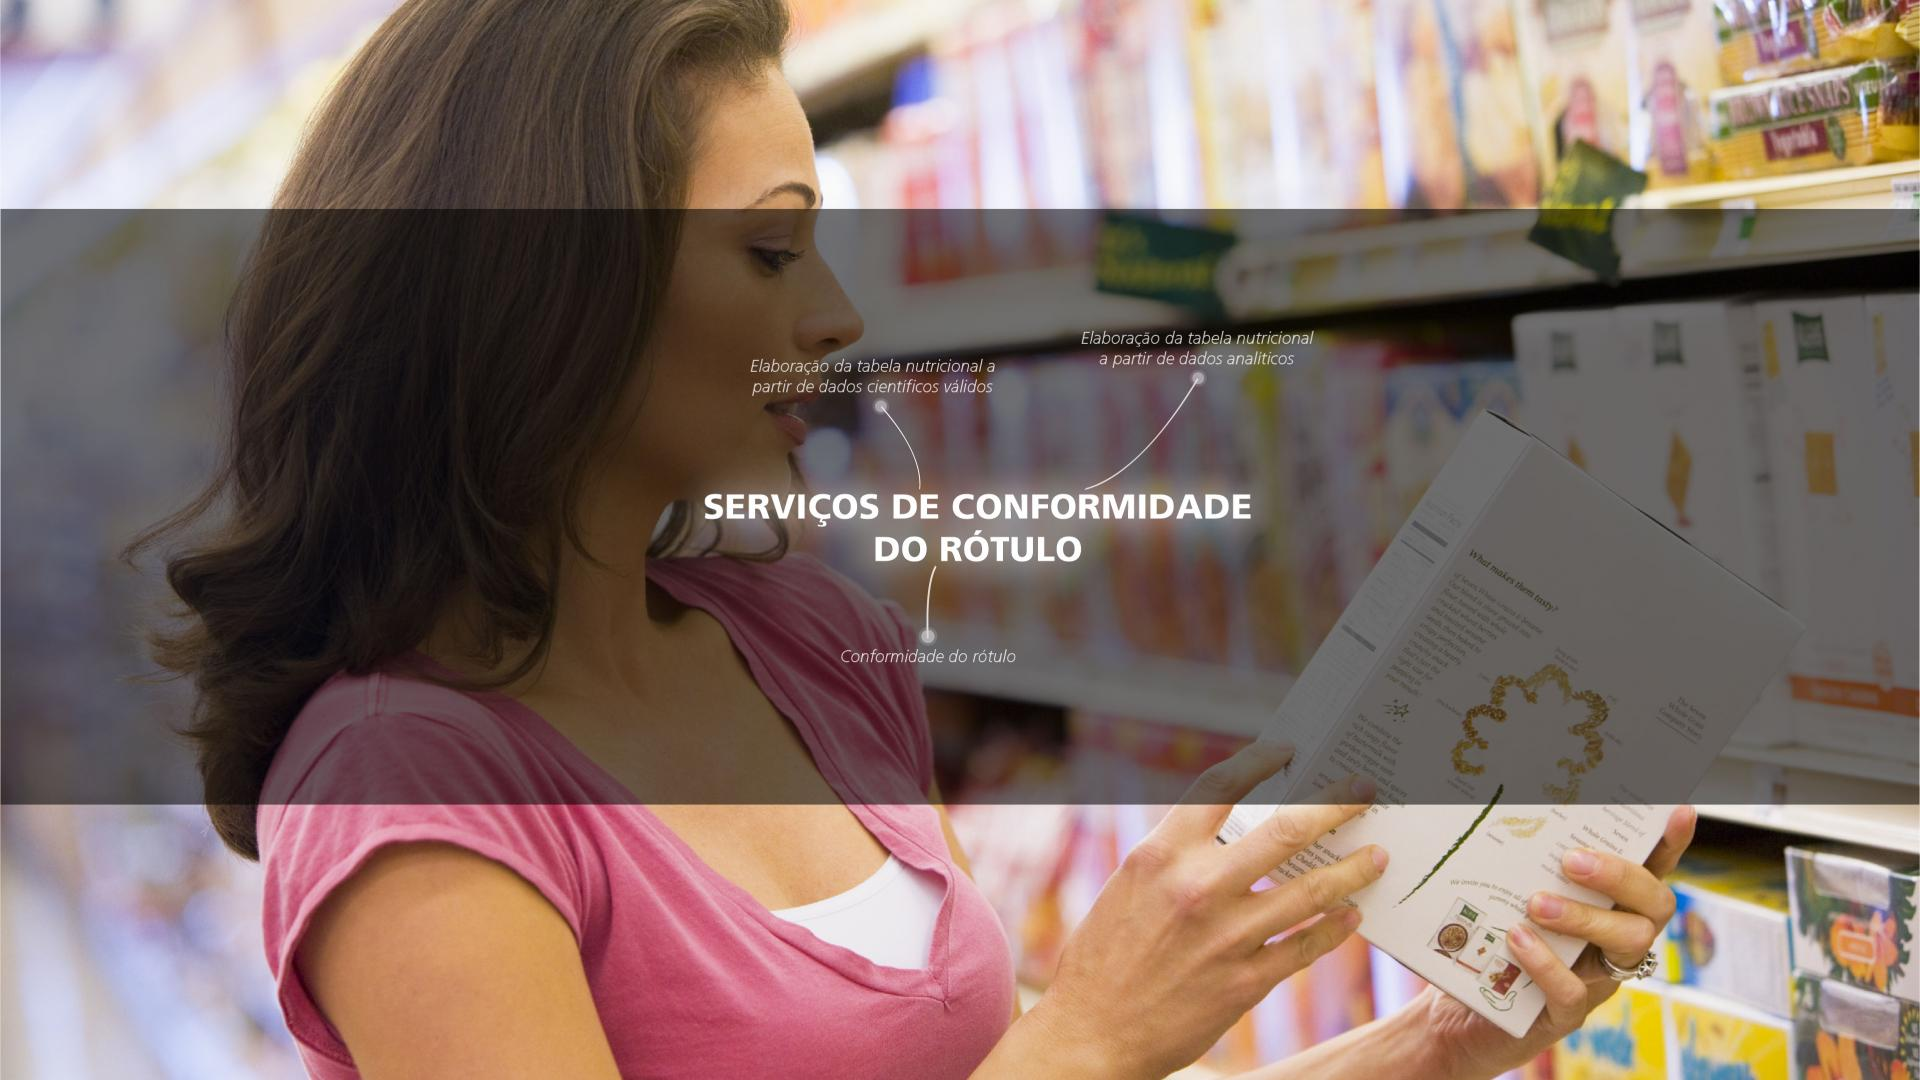 Mérieux NutriSciences - Labeling and Regulatory -SERVIÇOS DE CONFORMIDADE DO RÓTULO - PL